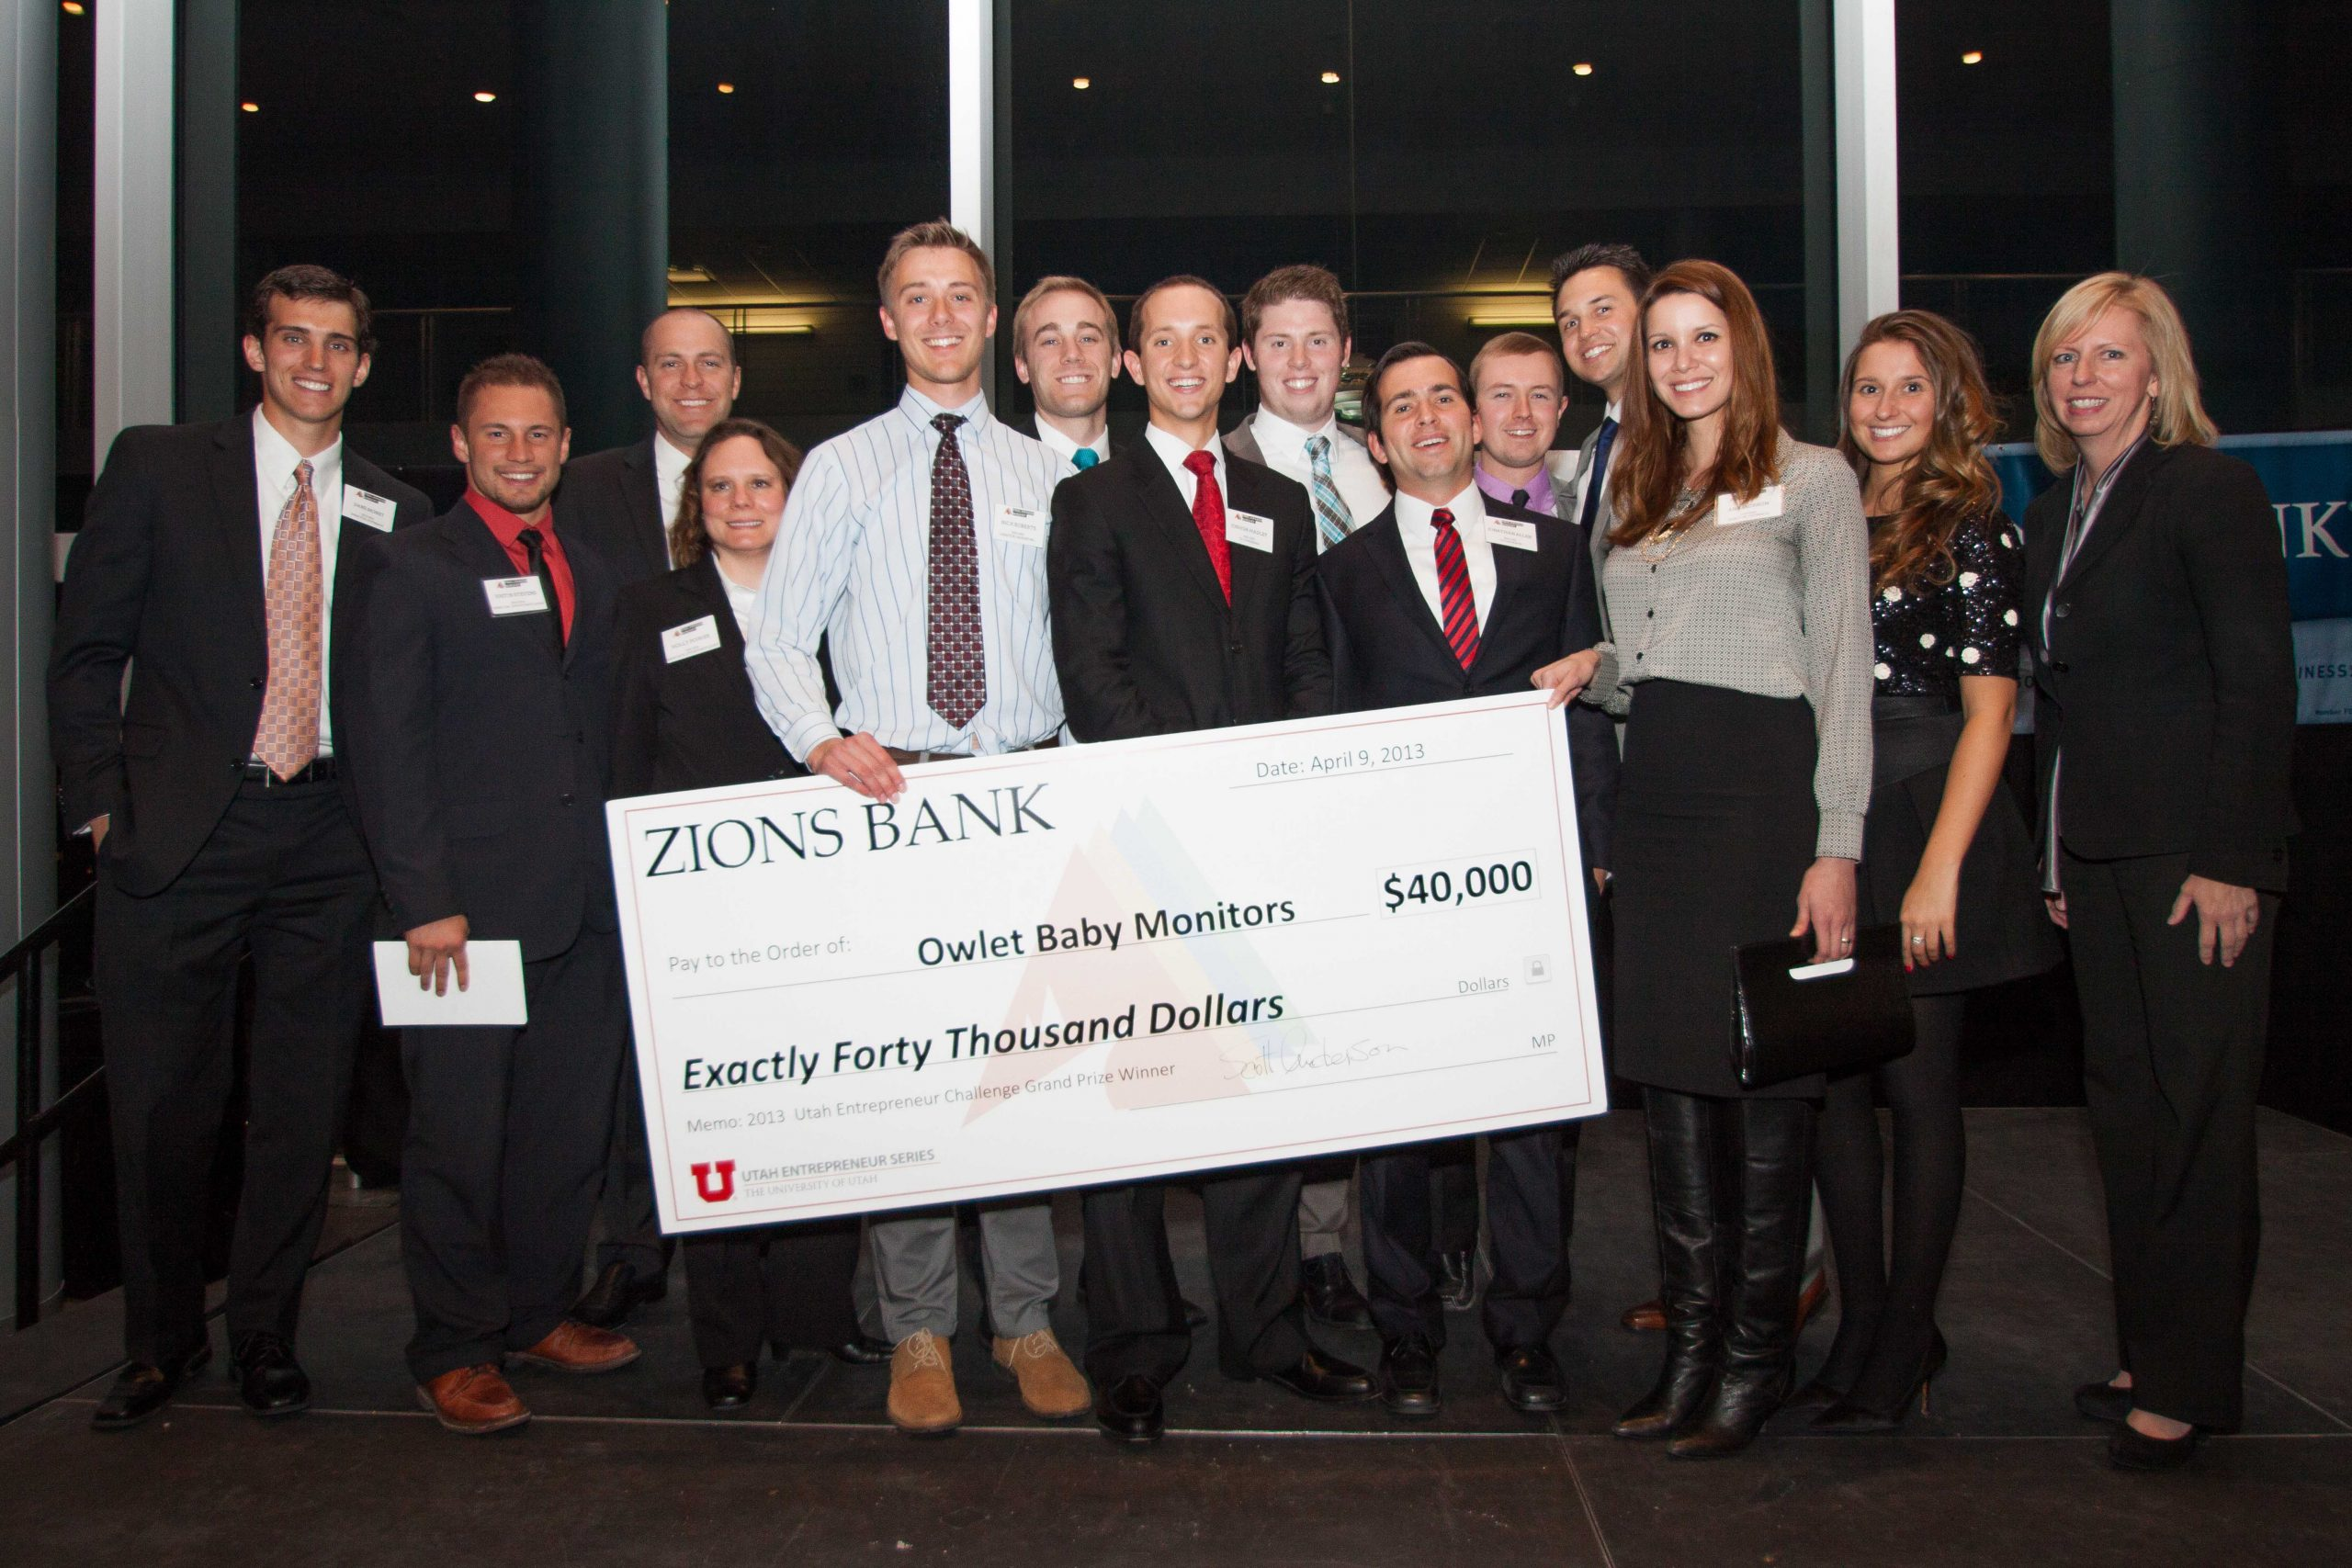 Last year, BYU students won the Utah Entrepreneur Challenge grand prize with their business plan for Owlet Baby Monitors.